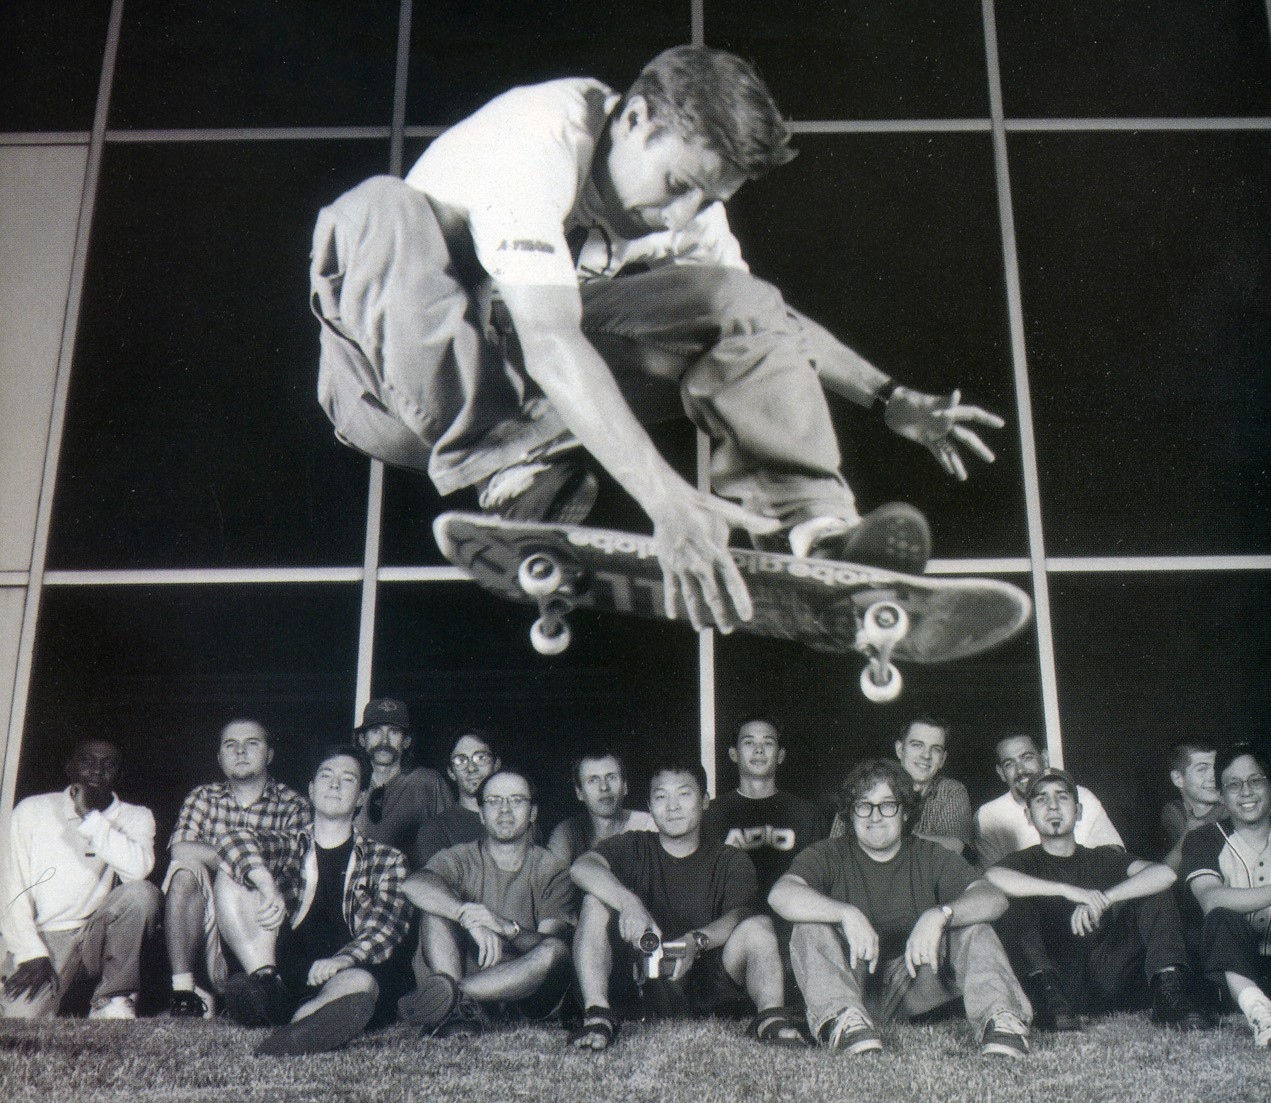 THPS2 Team Photo with Rodney Mullen